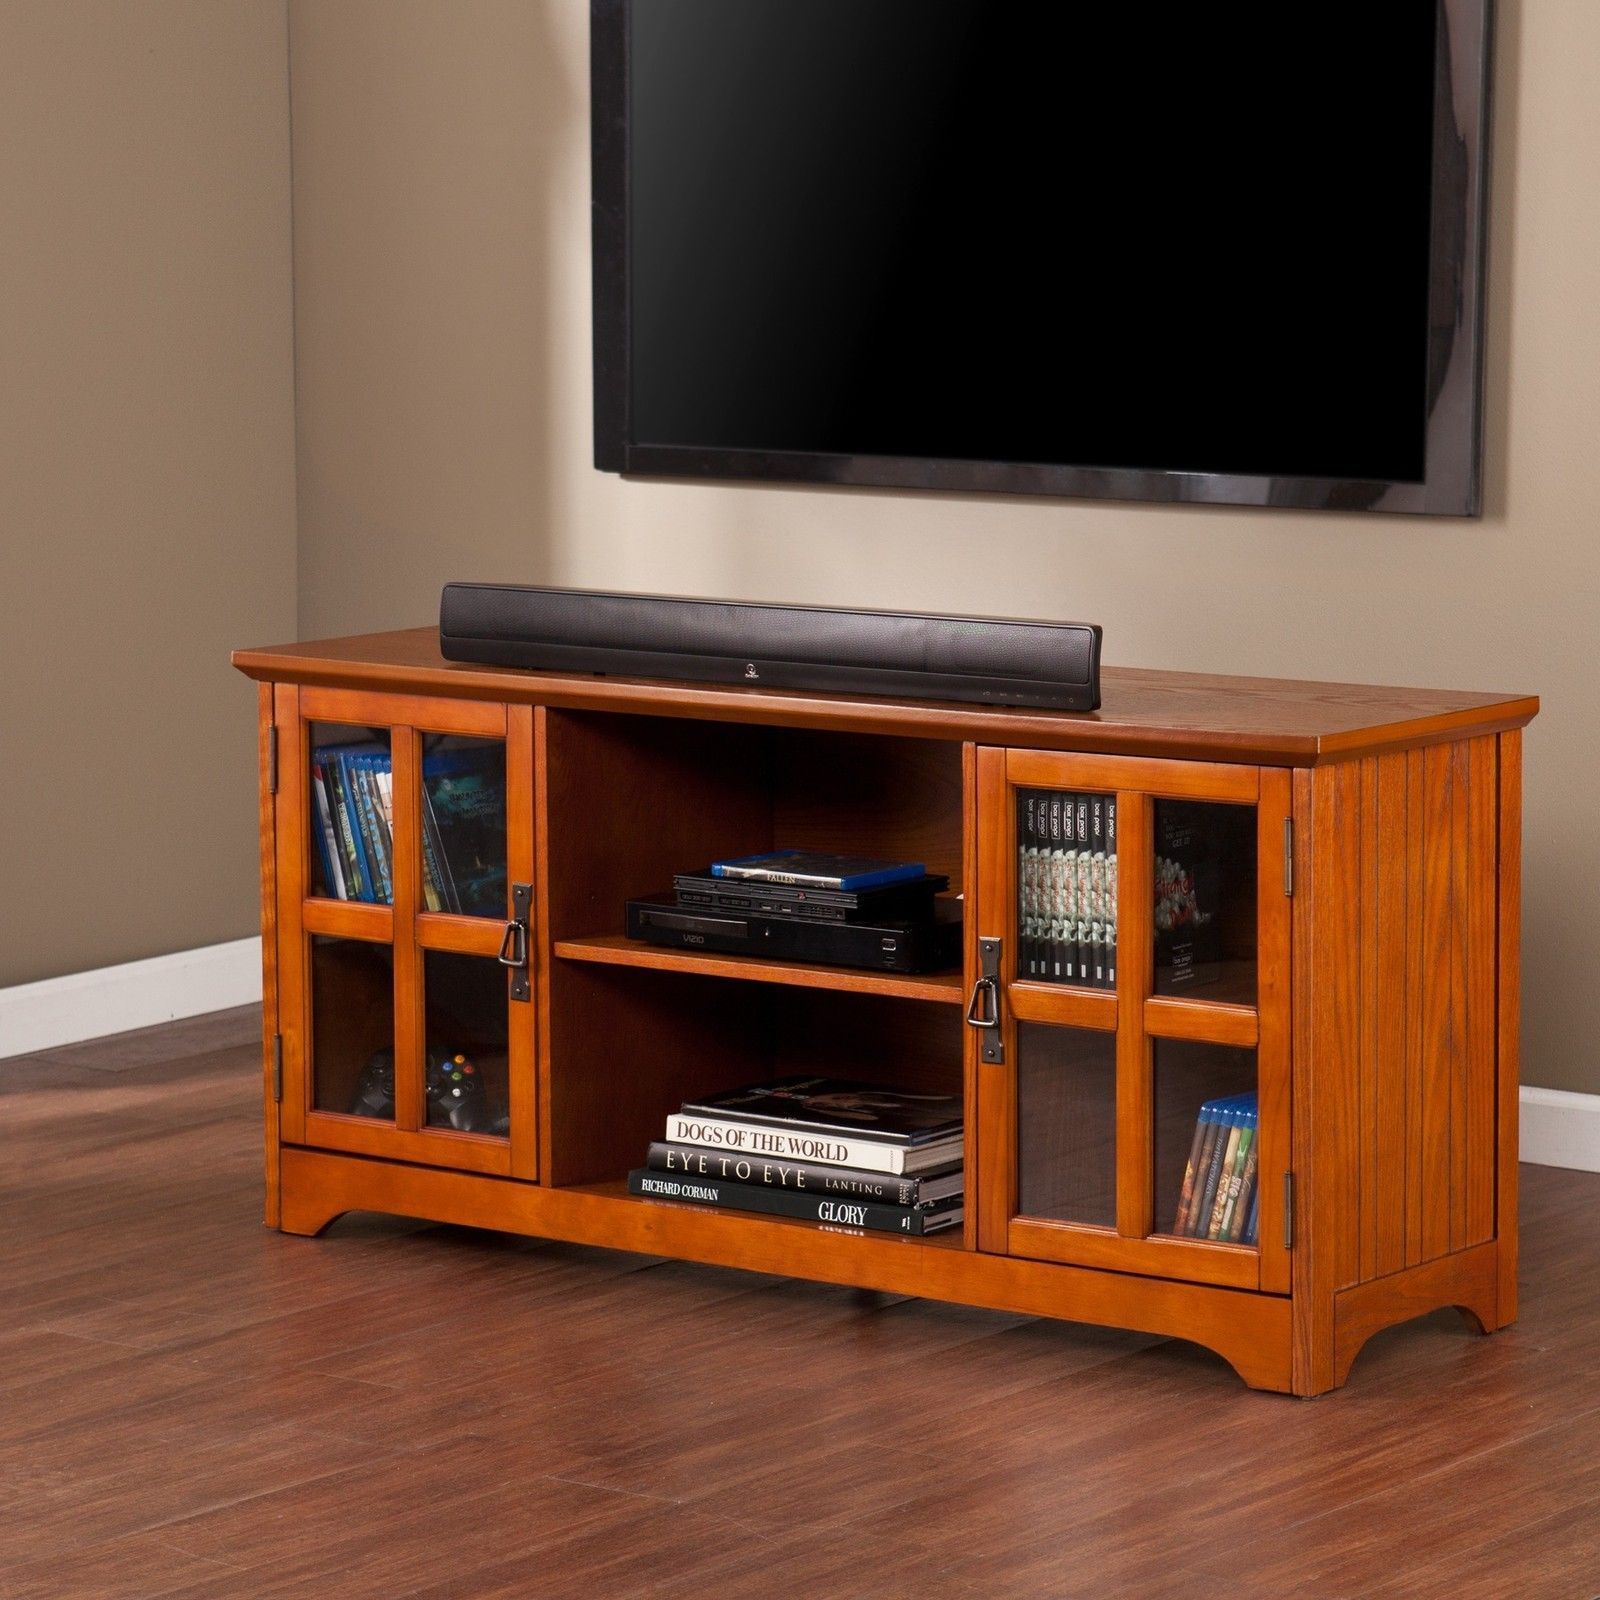 TV Media Stand Storage Entertainment Center Management Furniture Theater Viewing